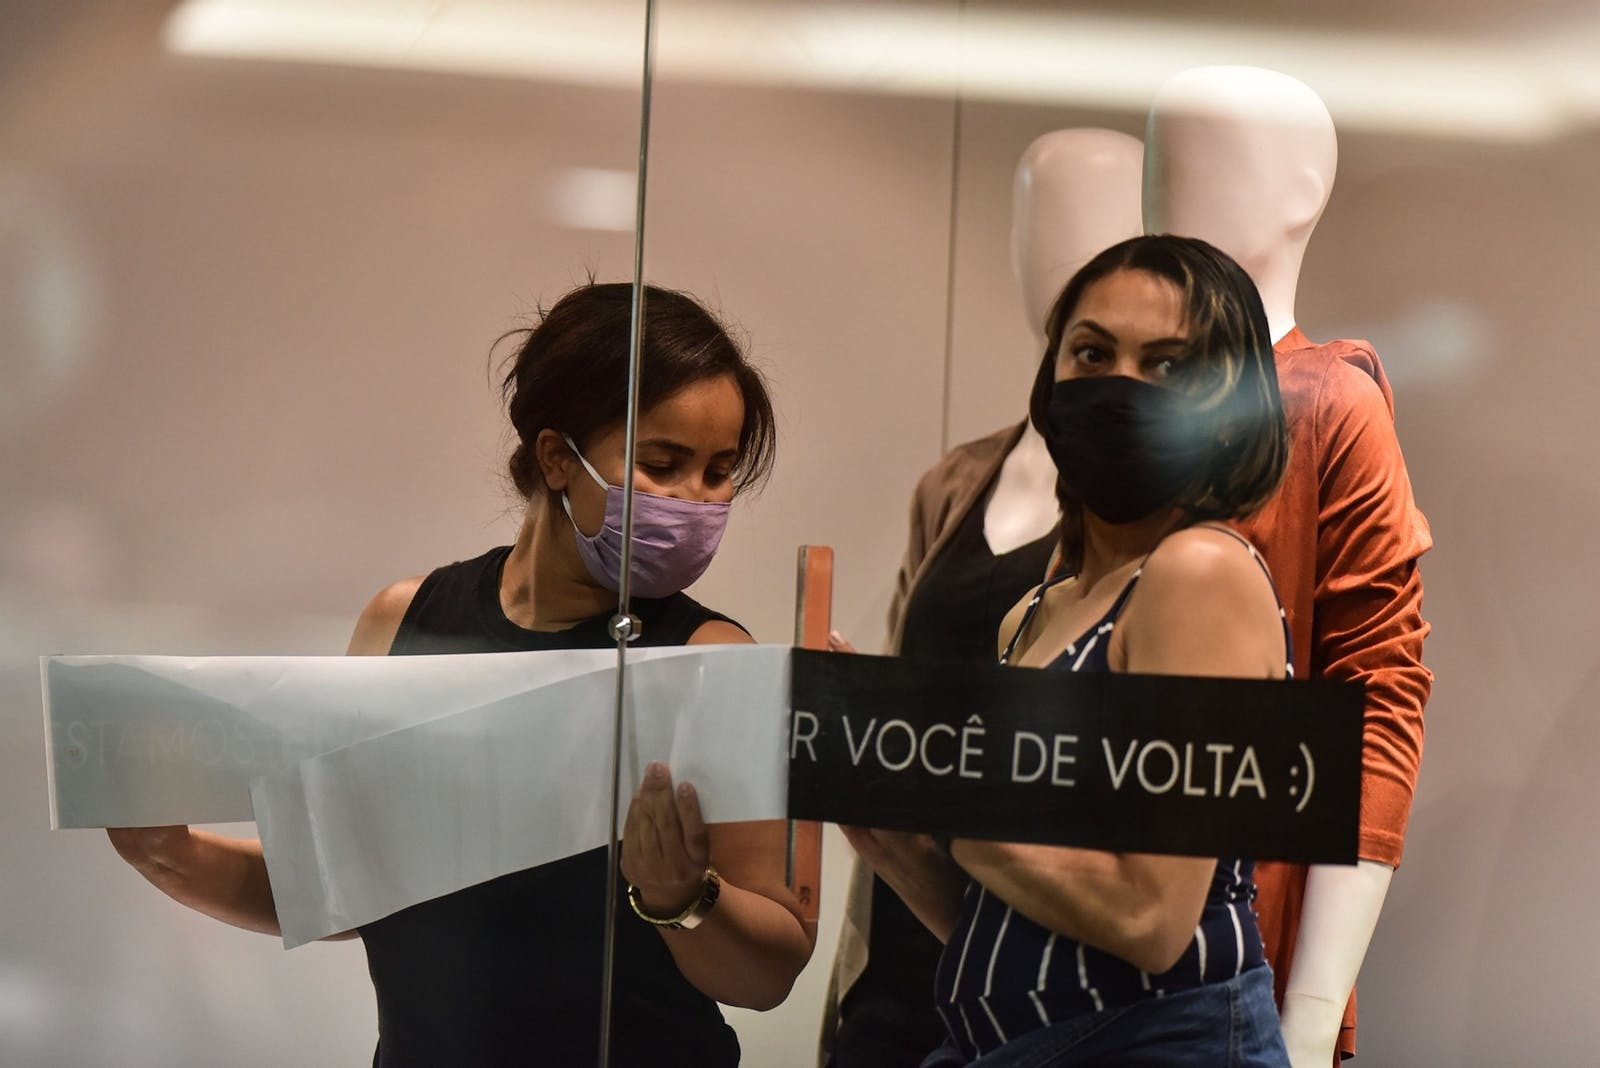 Workers at a store in Brazil, in May 2020. With more shoppers at home, online e-commerce surged in Brazil and elsewhere in Latin America last year. Photo: Bloomberg